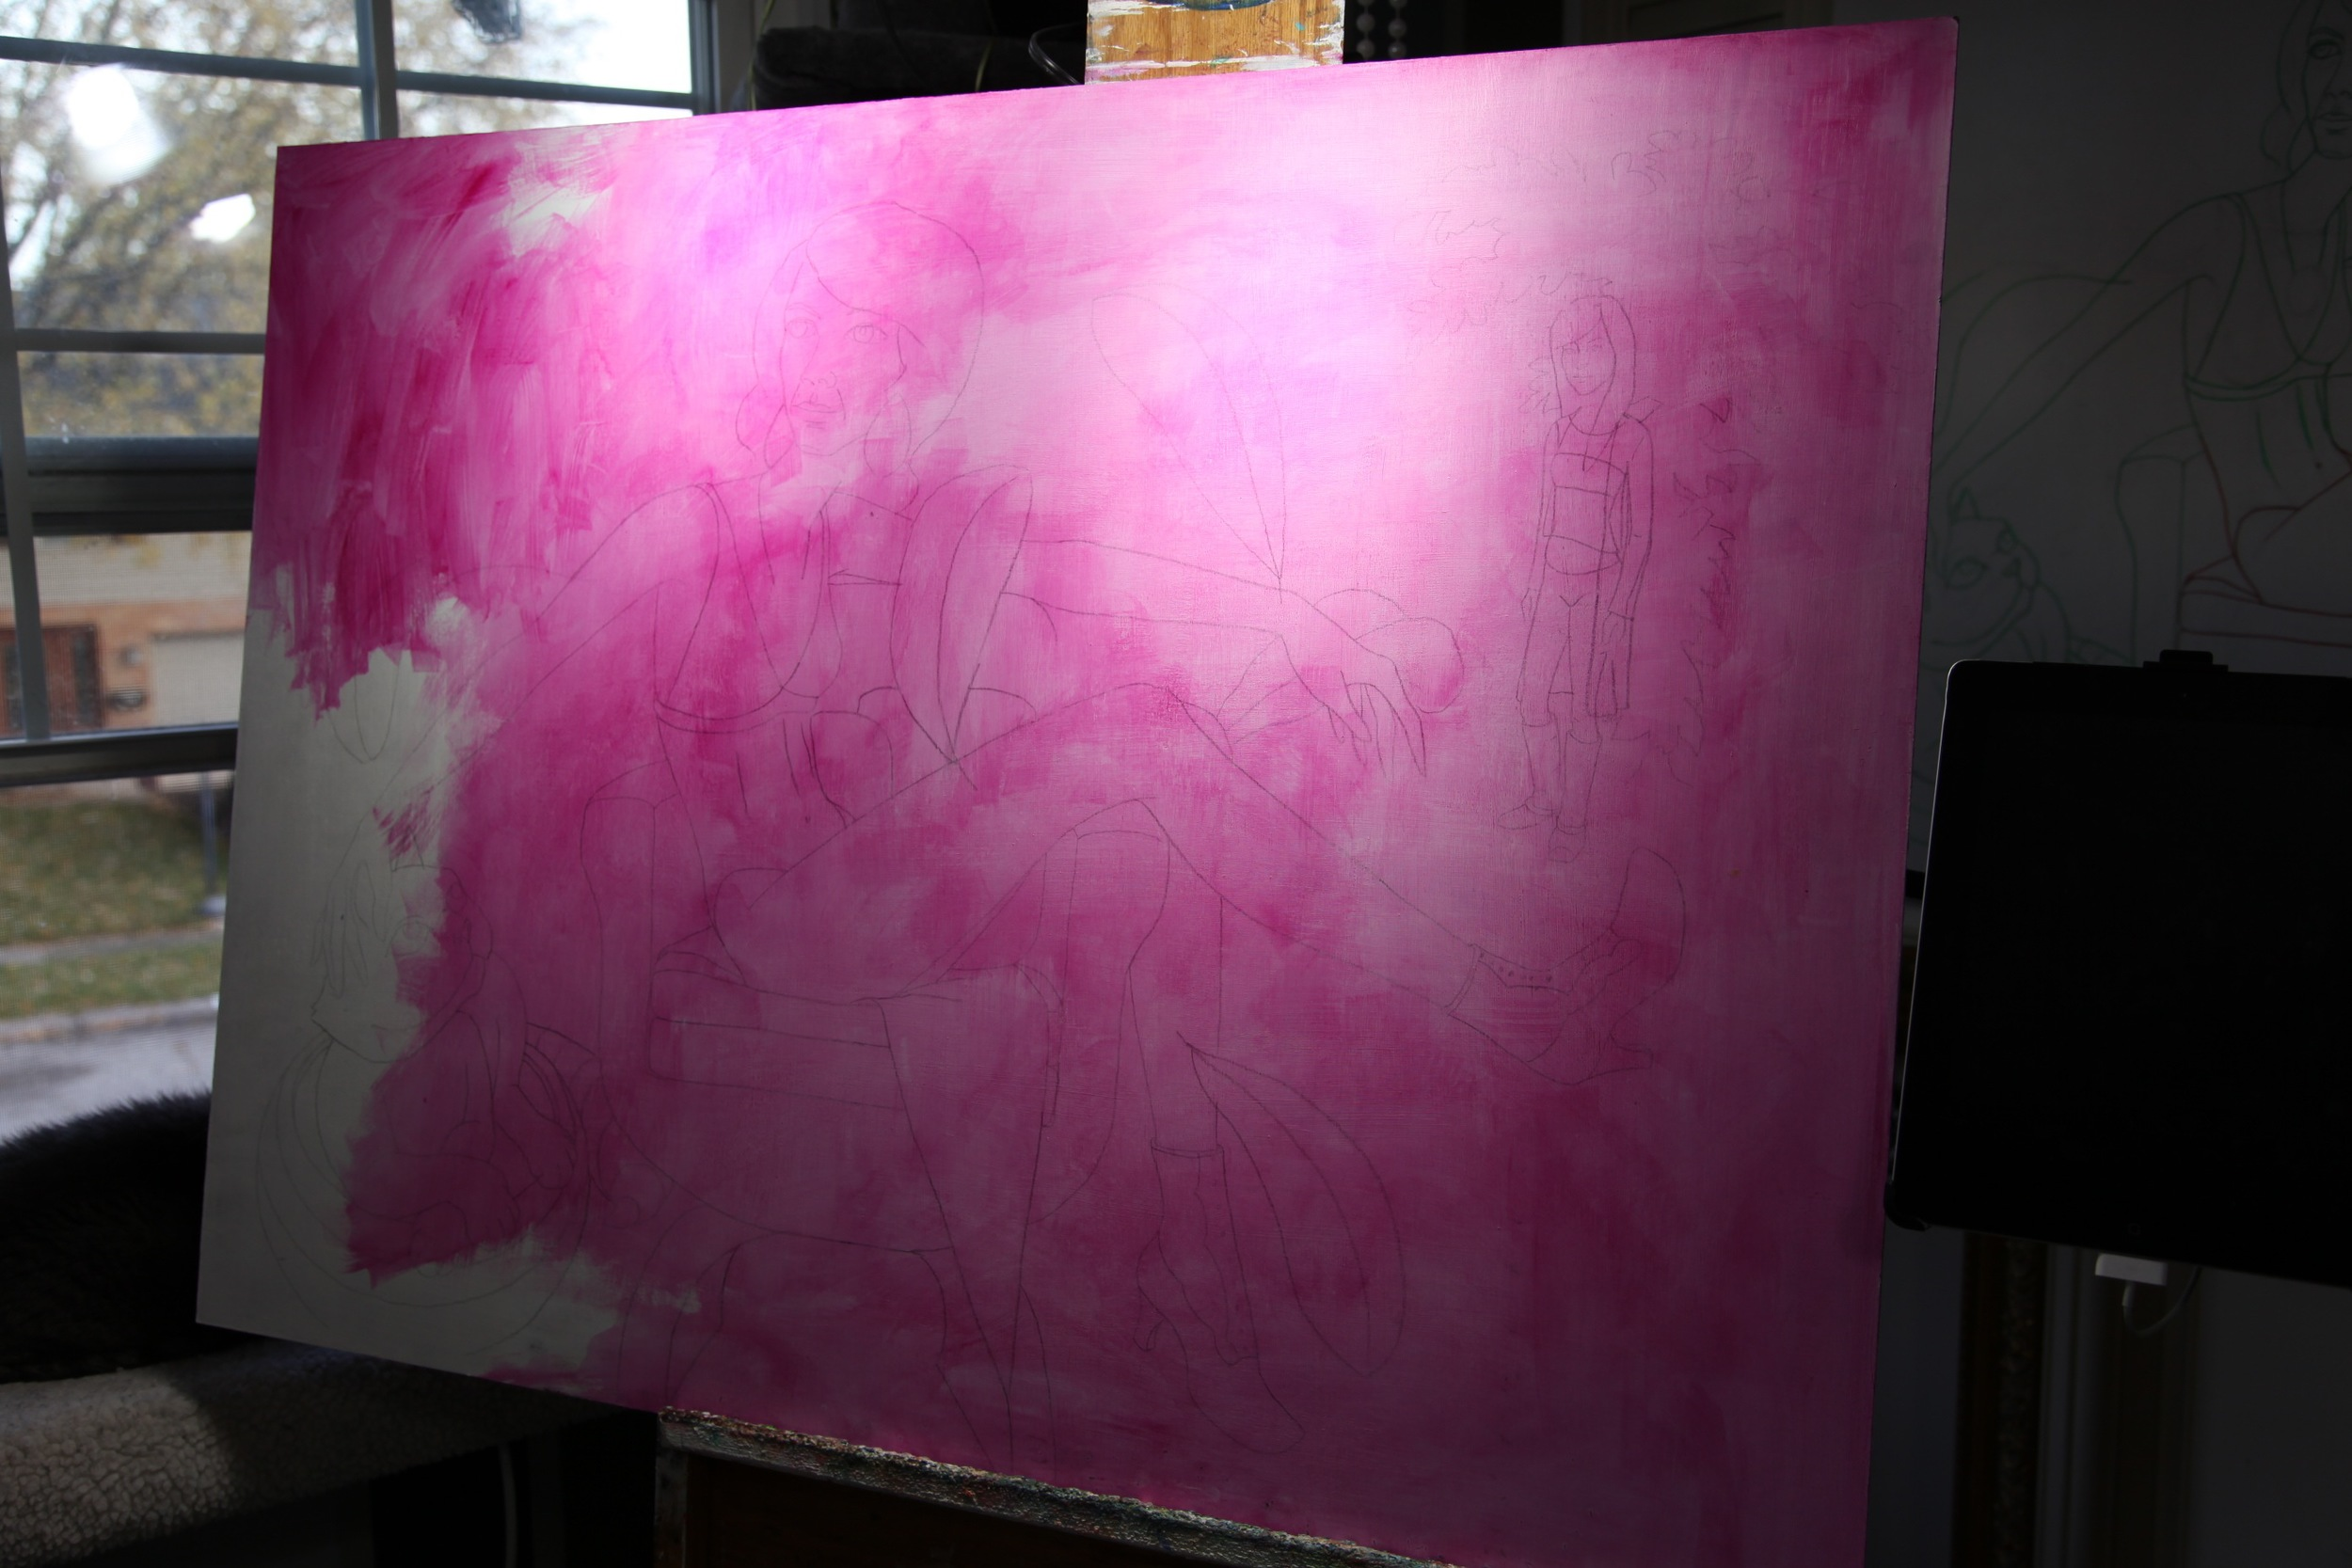 Starting with a wash of magenta, or more specifically, Liquitex Quinacridone.